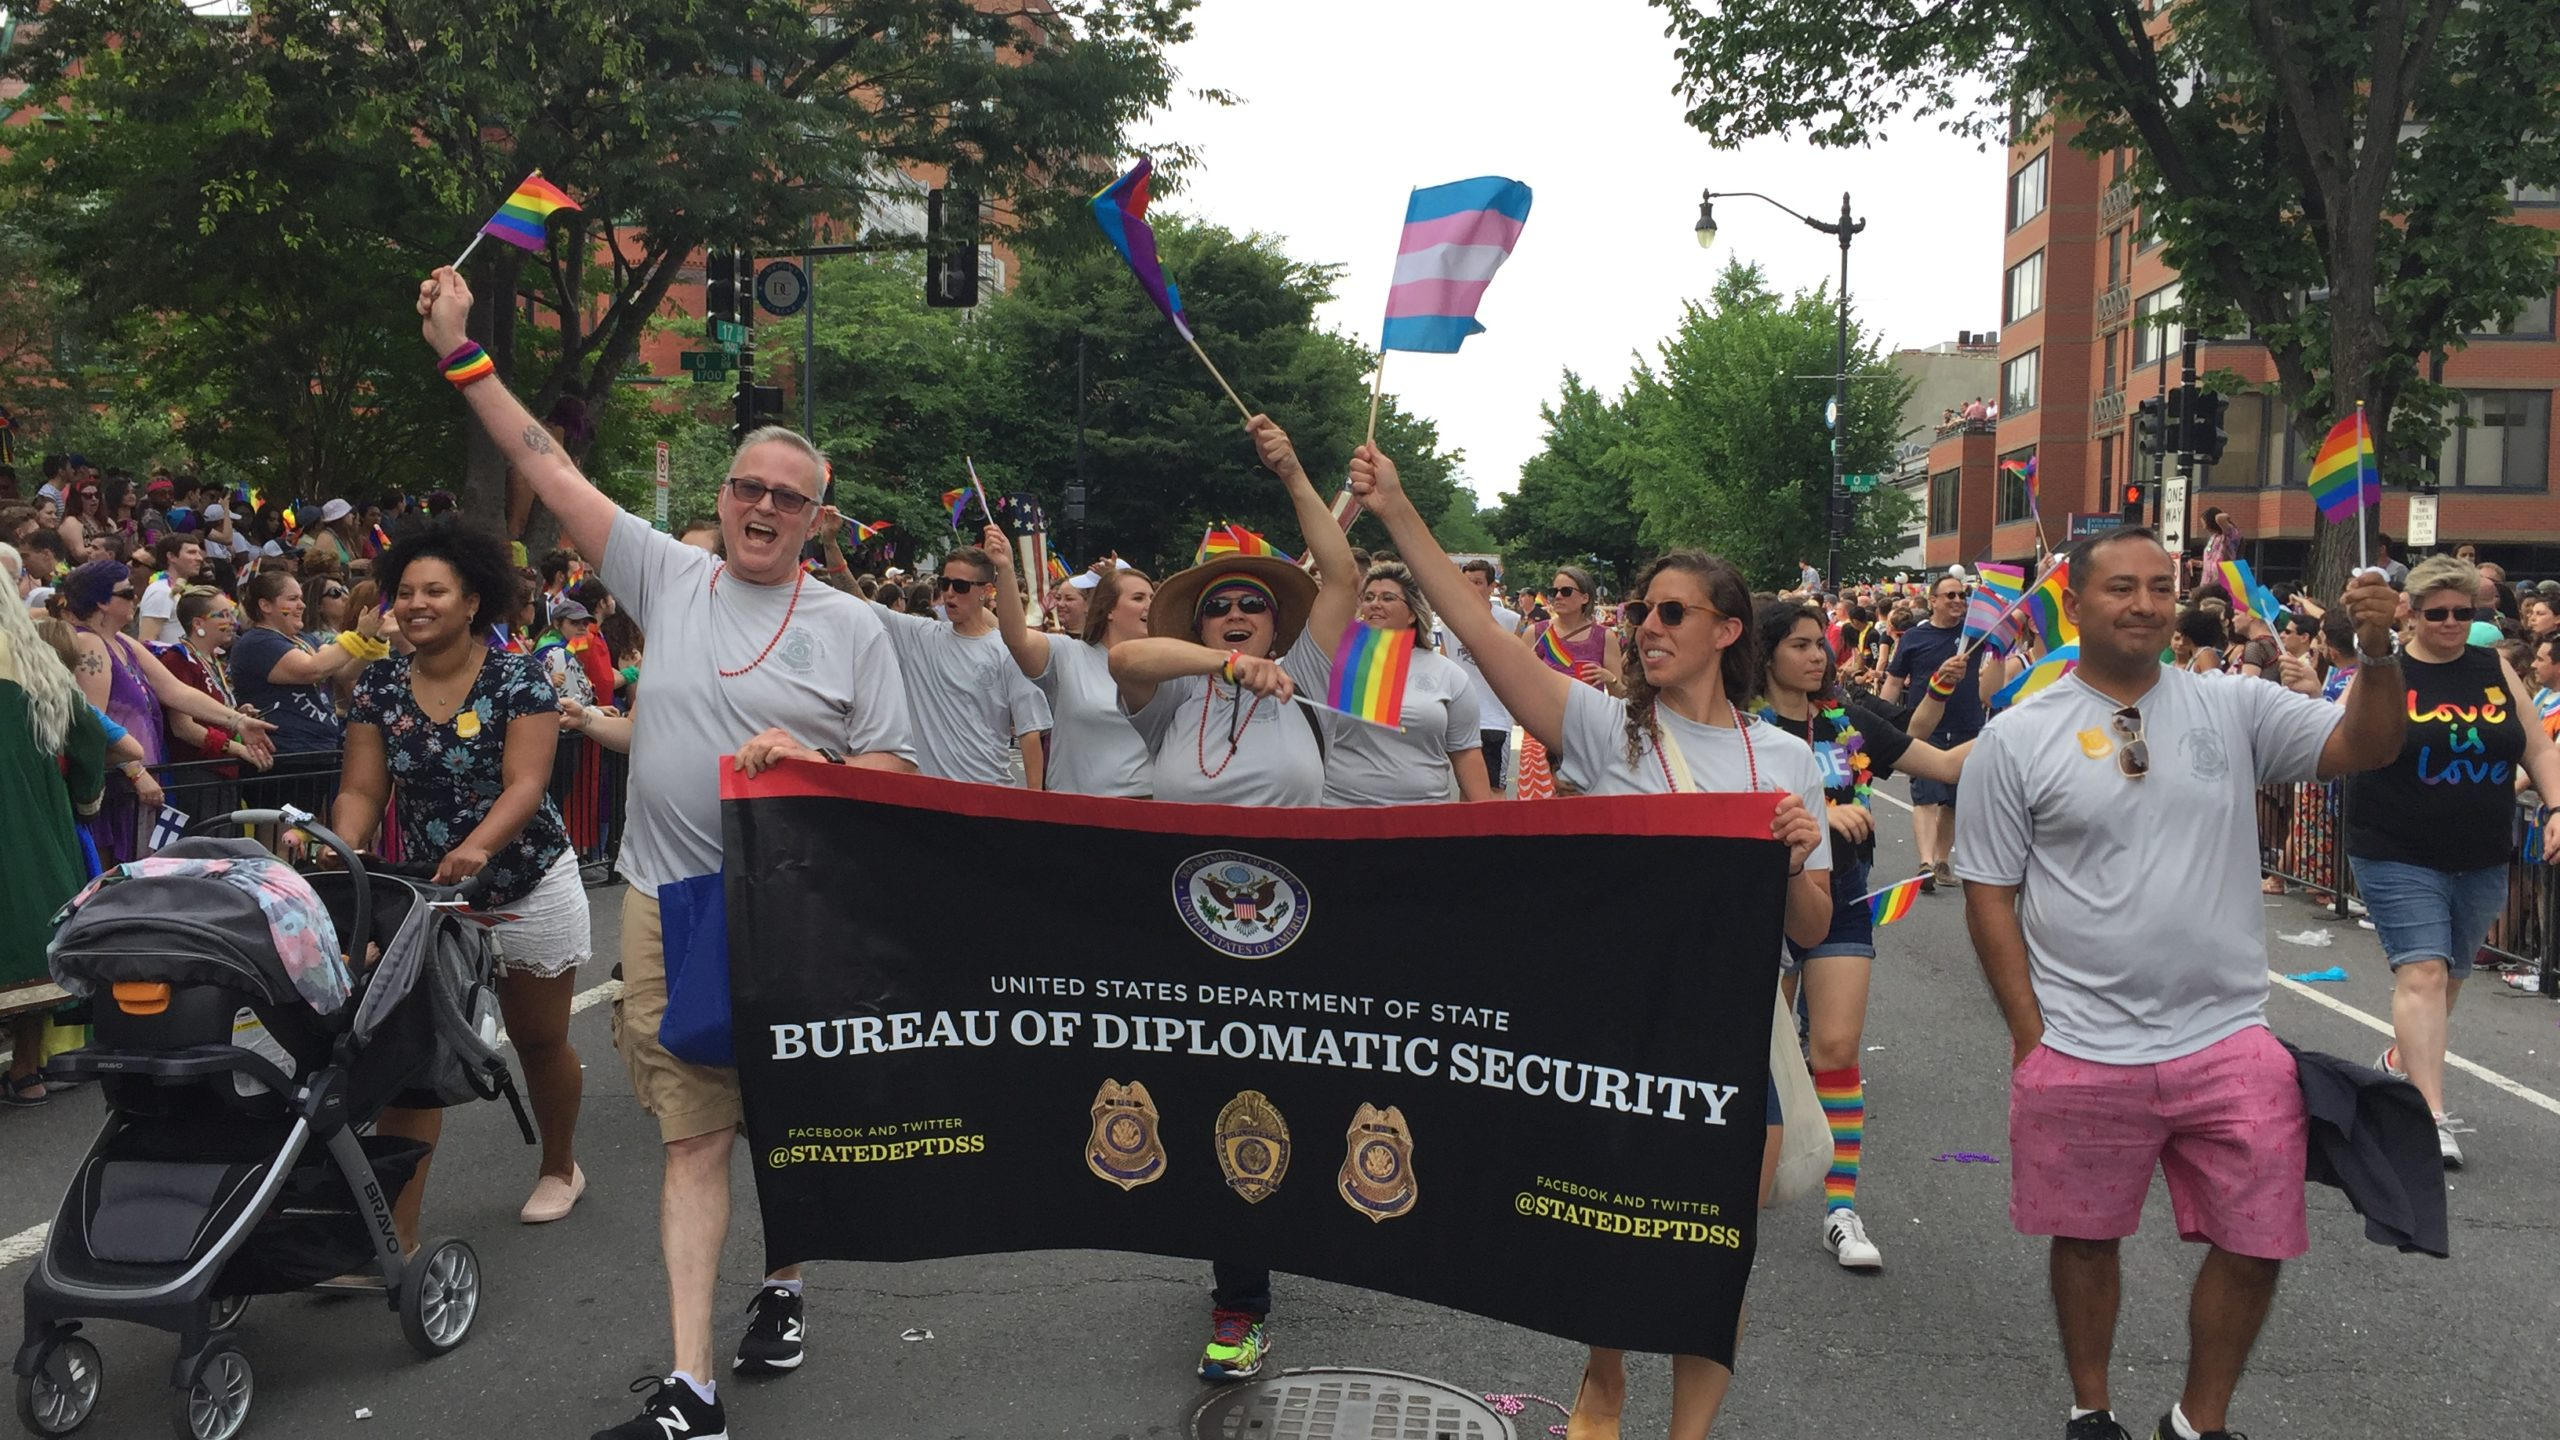 DSS personnel, friends and family members march during the 2019 Capital Pride Parade in Washington, D.C., on June 8, 2019. (U.S. Department of State photo)